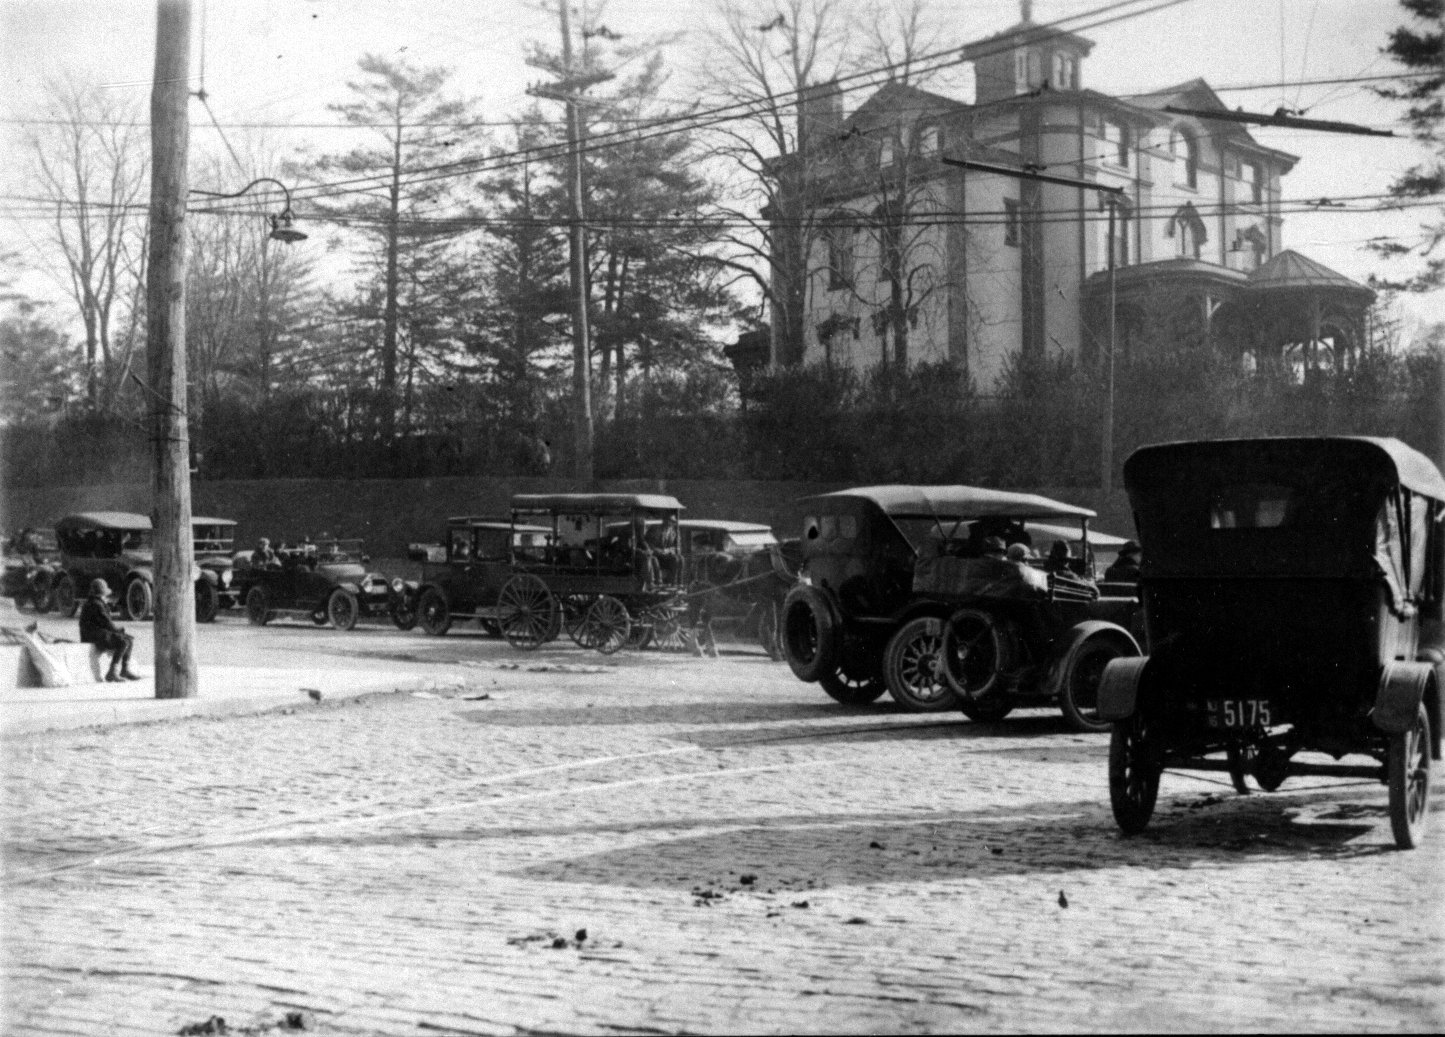 Meyer-Rice Mansion viewed from River Road in the early 20th century